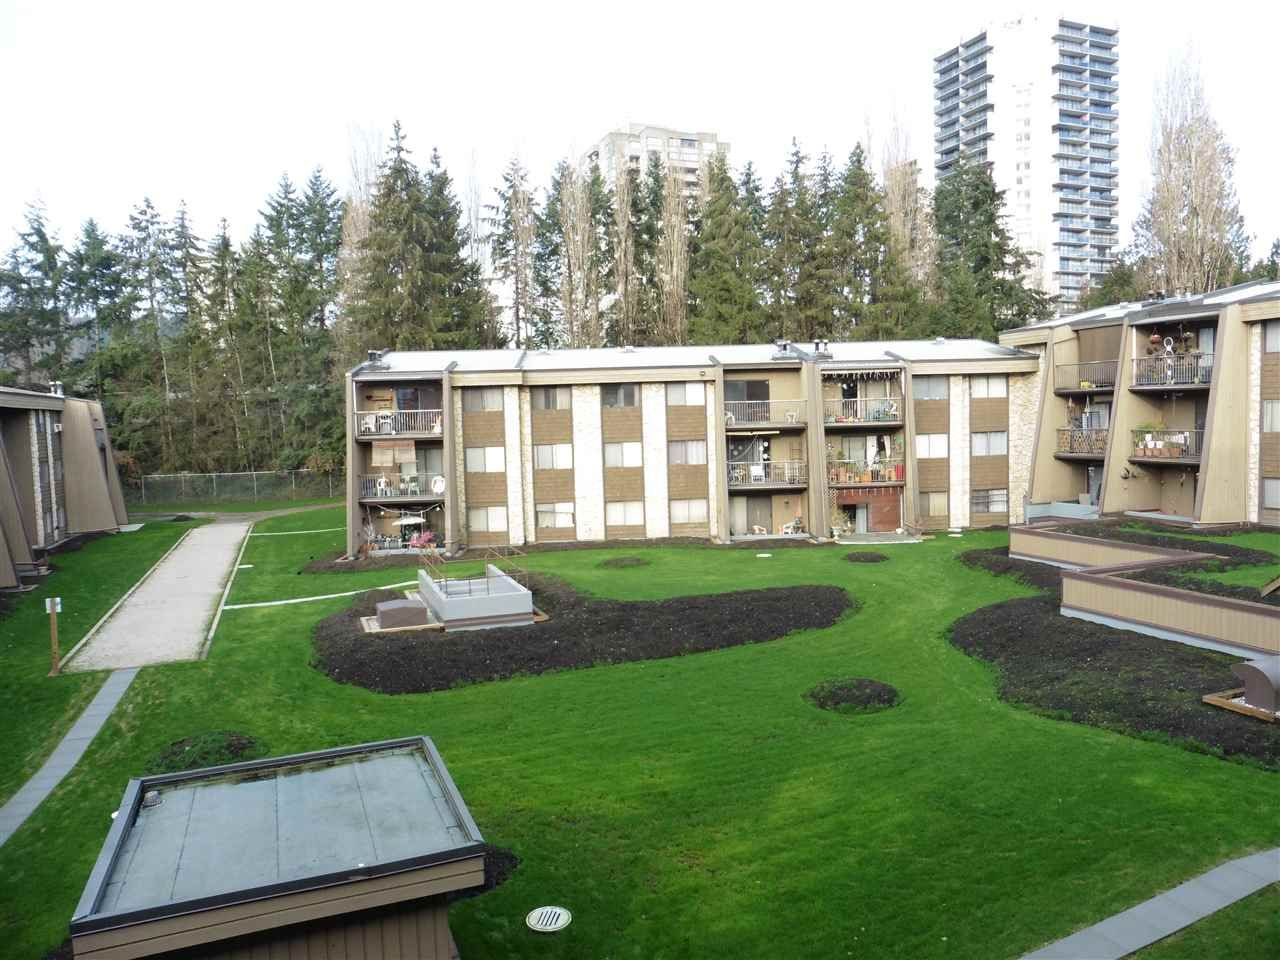 """Photo 16: Photos: 337 9101 HORNE Street in Burnaby: Government Road Condo for sale in """"WOODSTONE PLACE"""" (Burnaby North)  : MLS®# R2330471"""